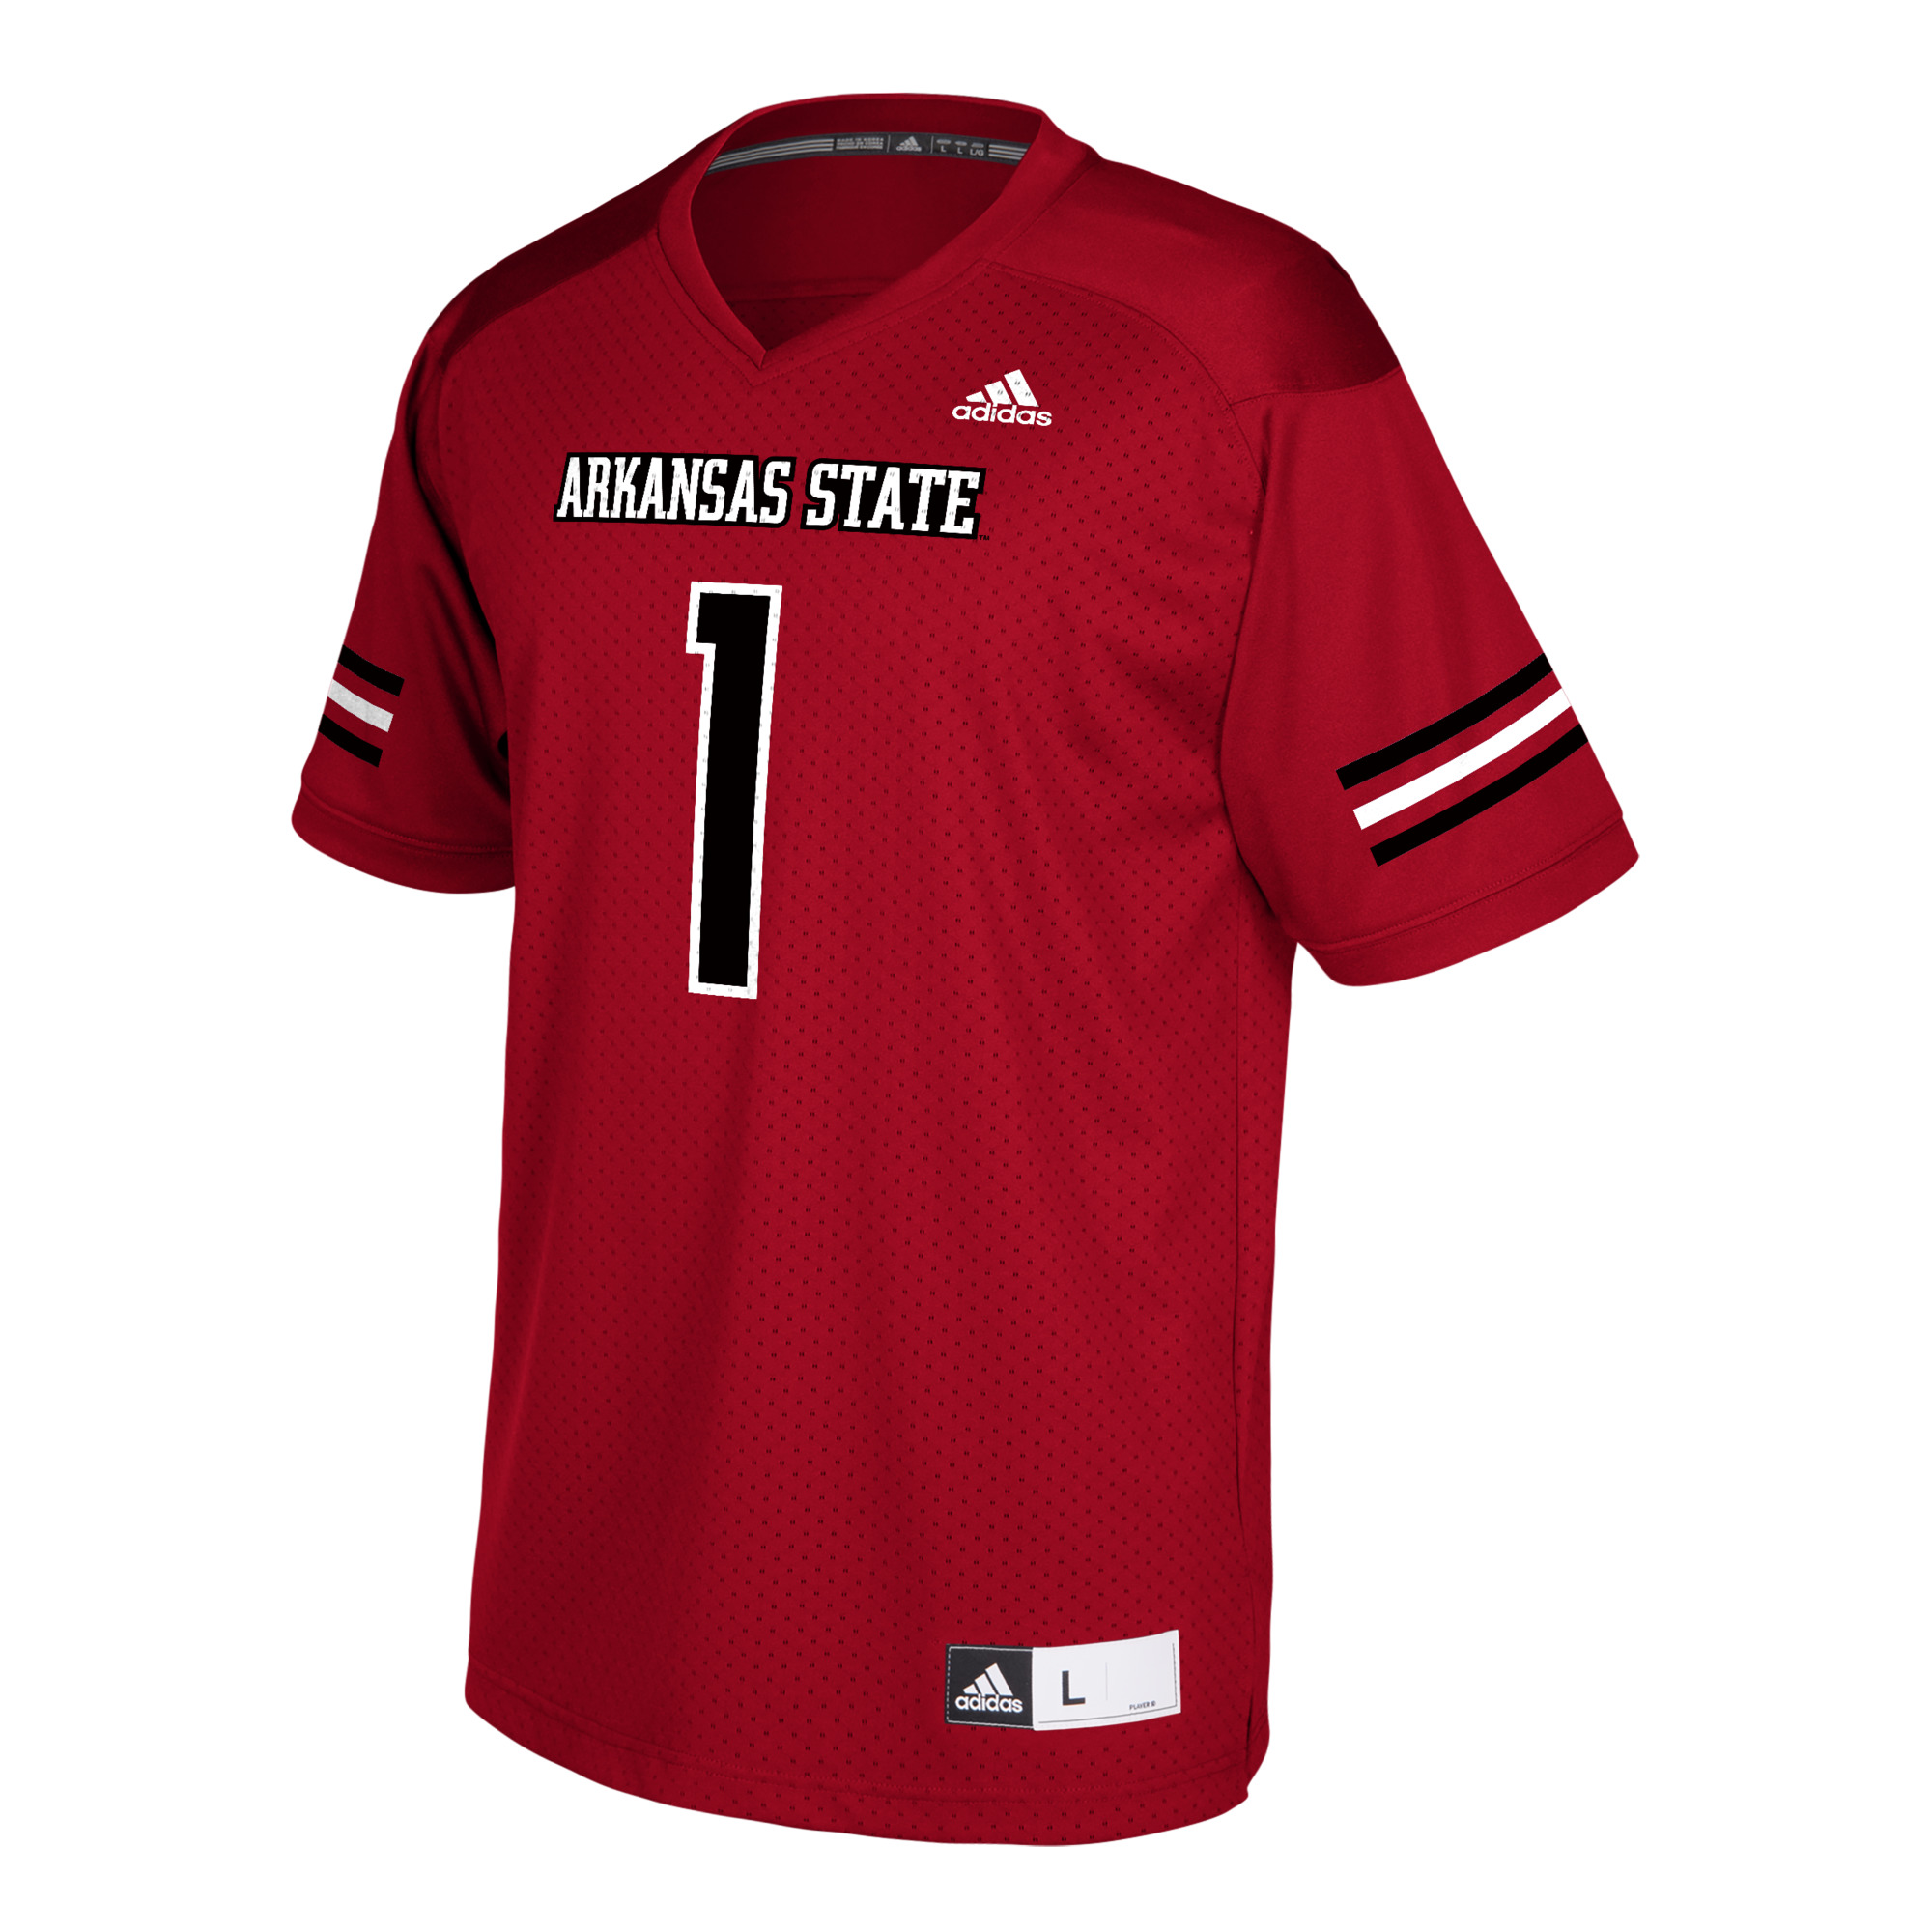 Arkansas State Youth Jersey